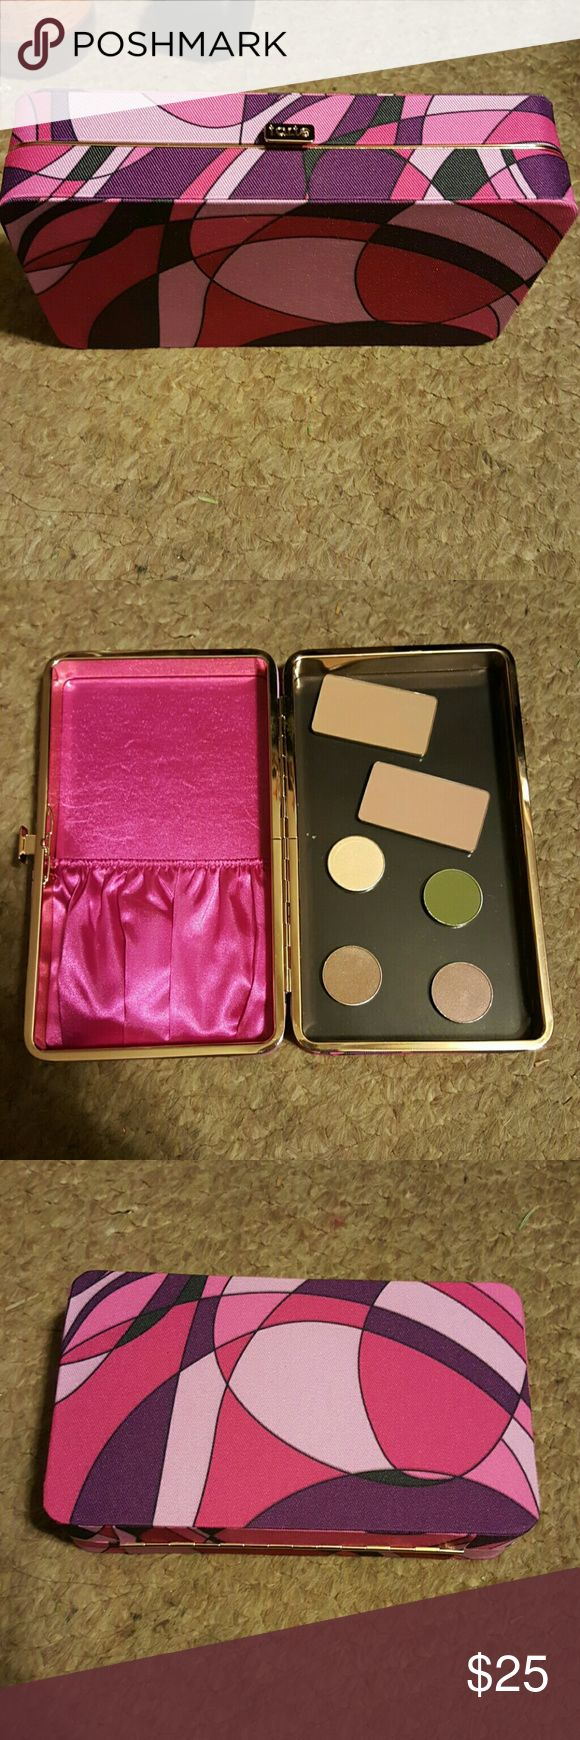 Tarte brush case/ magnetic palette Perfect for travelling. Came with the holiday brush set. Never used it except to take pictures. One side has a pouch to store brushes and the other side is magnetic so it serves kind of as a Z pallette. Eyeshadow pans and contour pans not included. Listing is for case only!! tarte Makeup Brushes & Tools